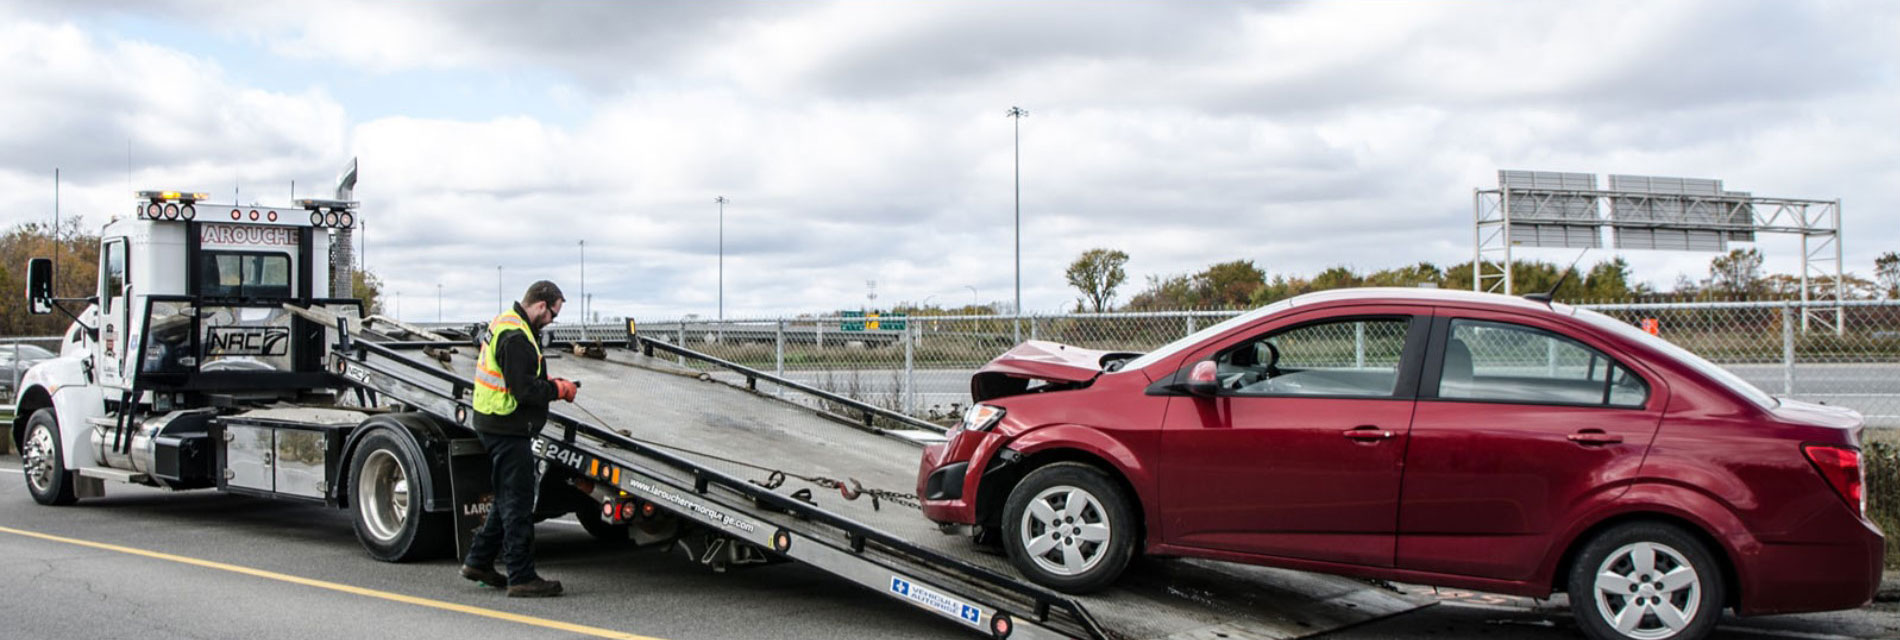 DNA Auto Services Limited - Main Page Vehicle Recovery